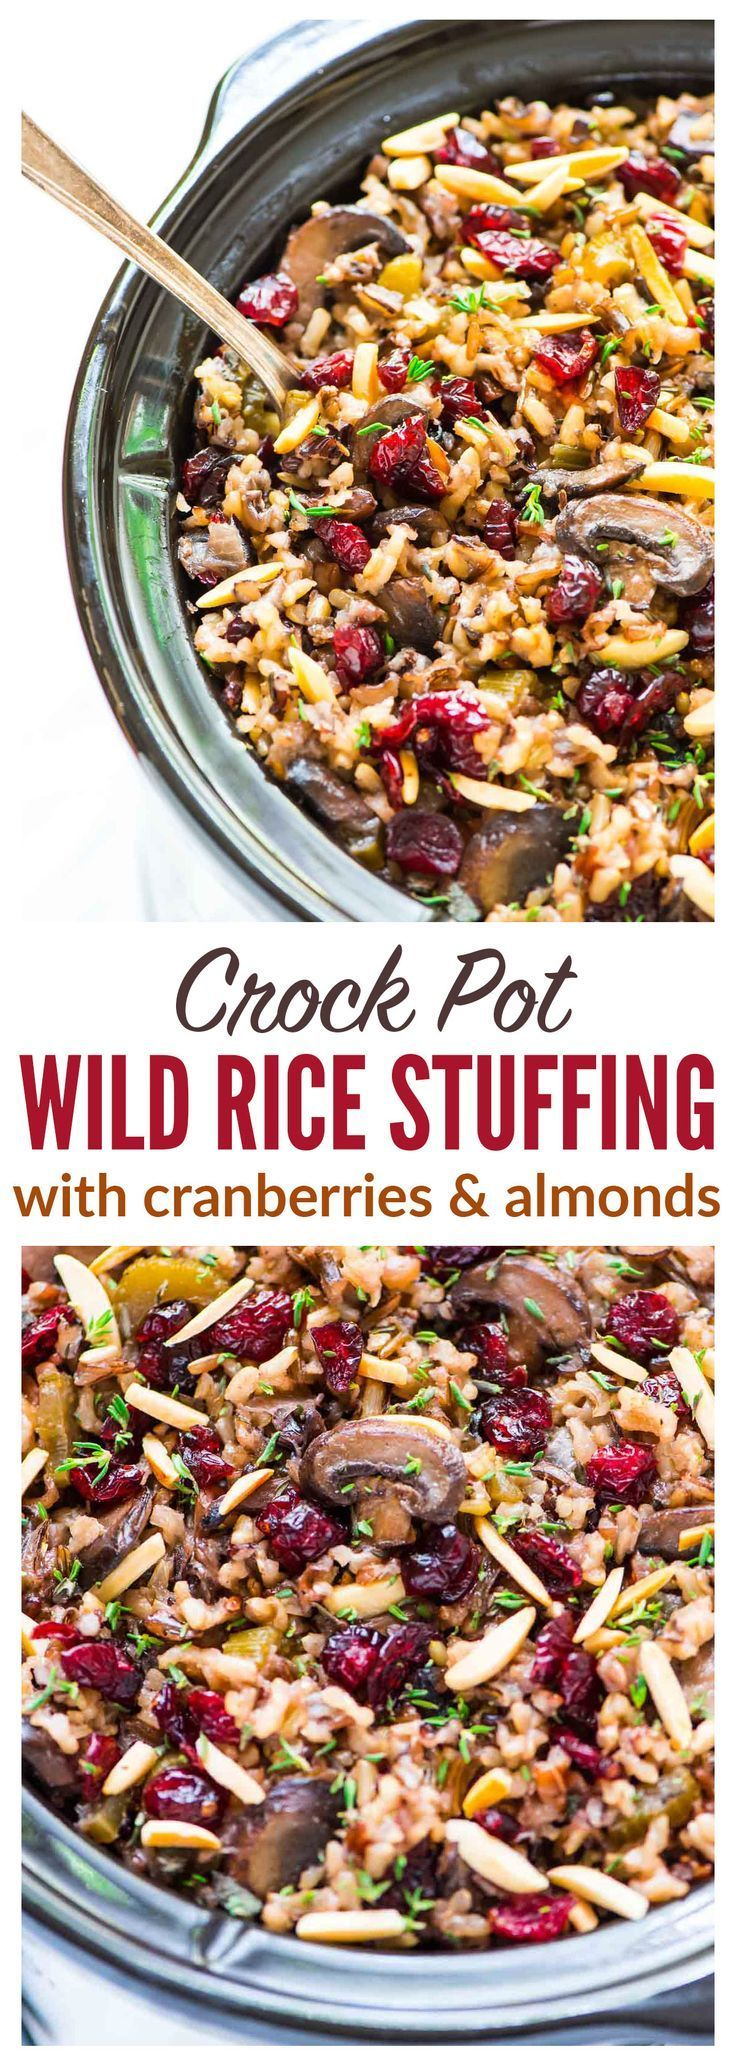 Free up the oven for Thanksgiving with this Crockpot Stuffing with Wild Rice and Cranberries. An easy, DELICIOUS gluten free stuffing recipe that everyone can enjoy! Simple, cozy slow cooker recipe that's perfect for holidays or anytime you are hosting a crowd. Recipe at wellplated.com | @wellplated {vegan, gluten free} #thanksgivingrecipes